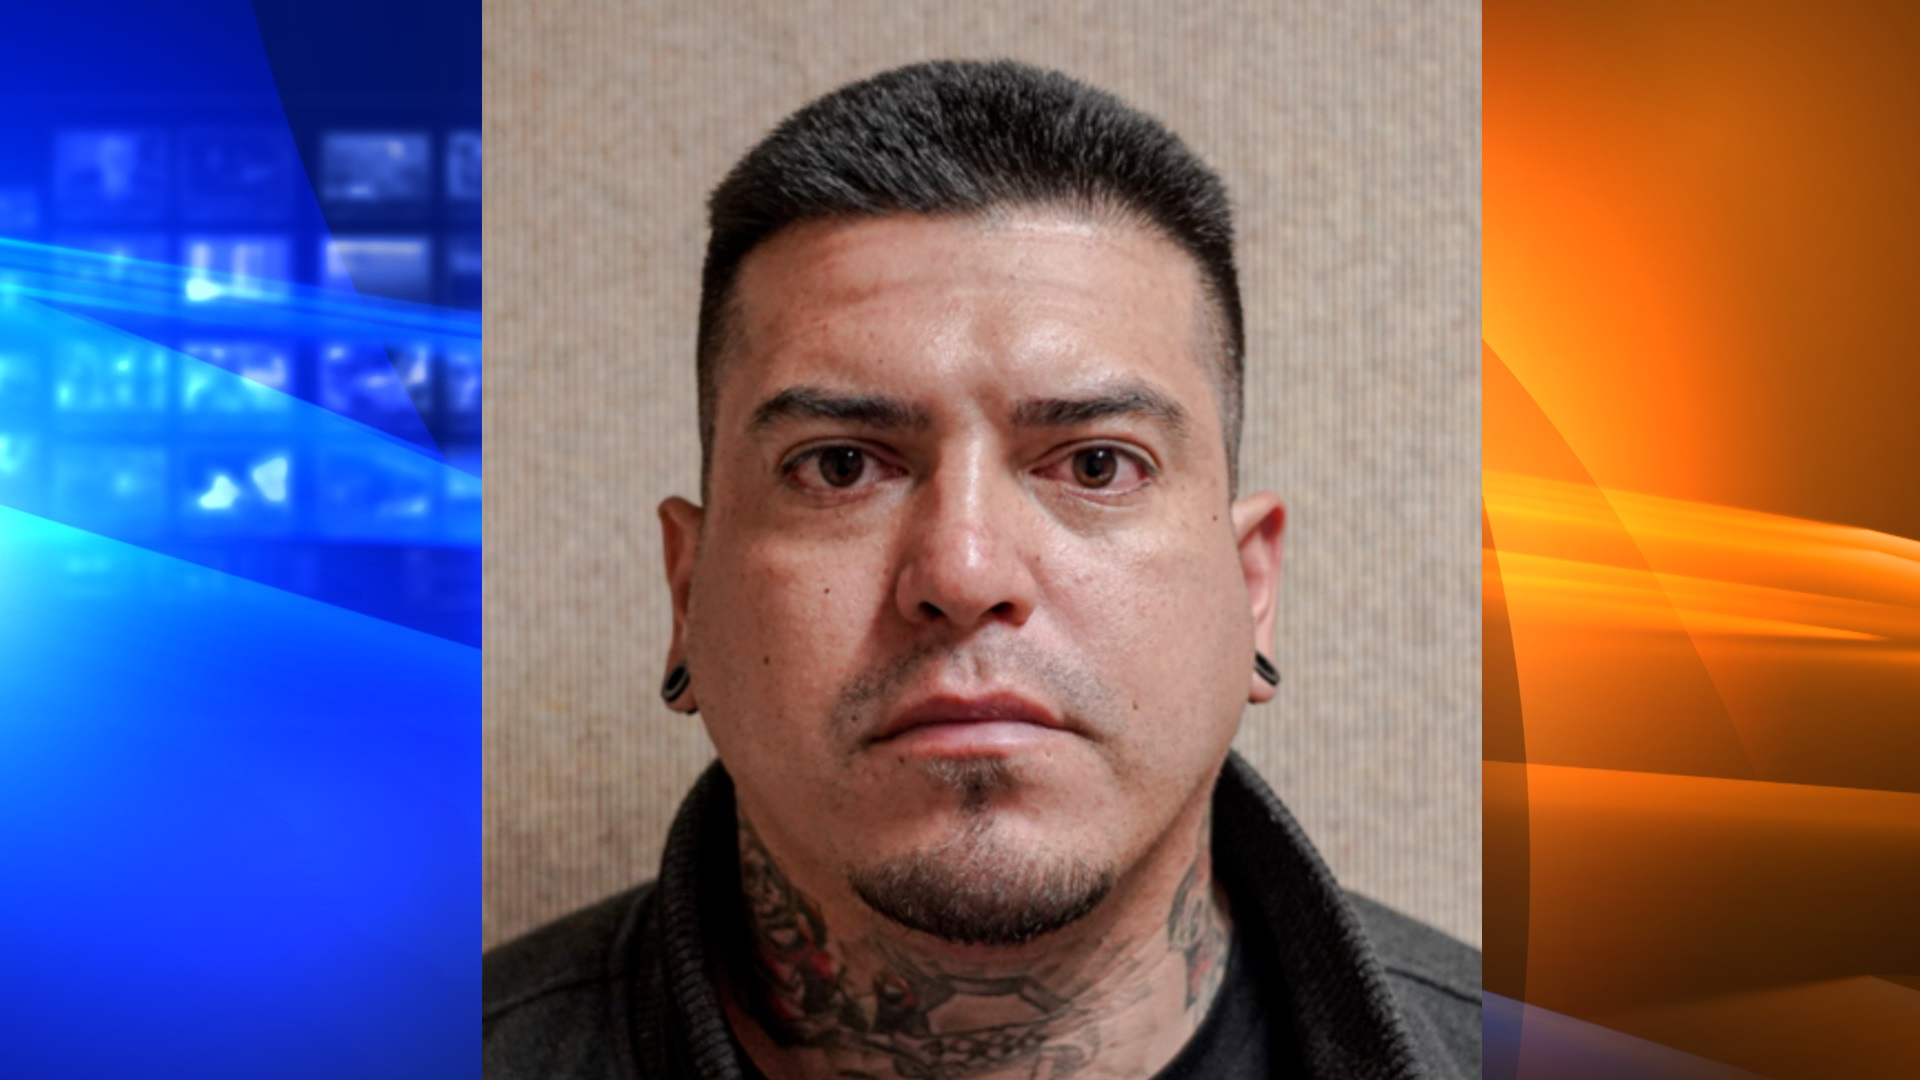 Jesse Aceves, 33, of Beaumont, pictured in a photo released by the Fontana Police Department following his arrest on June 17, 2020.